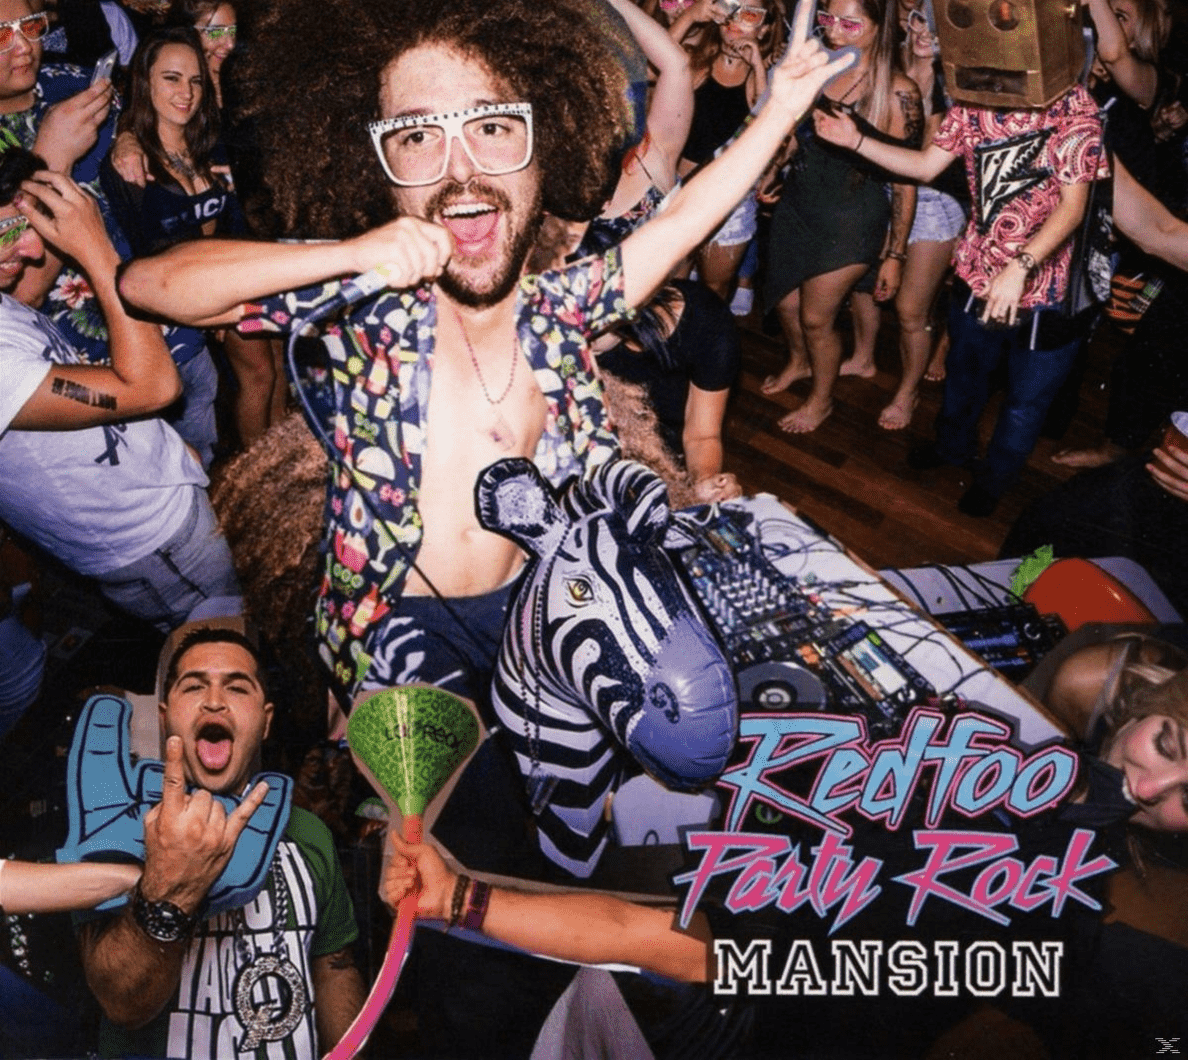 Redfoo - Party Rock Mansion (Explicit) - (CD)